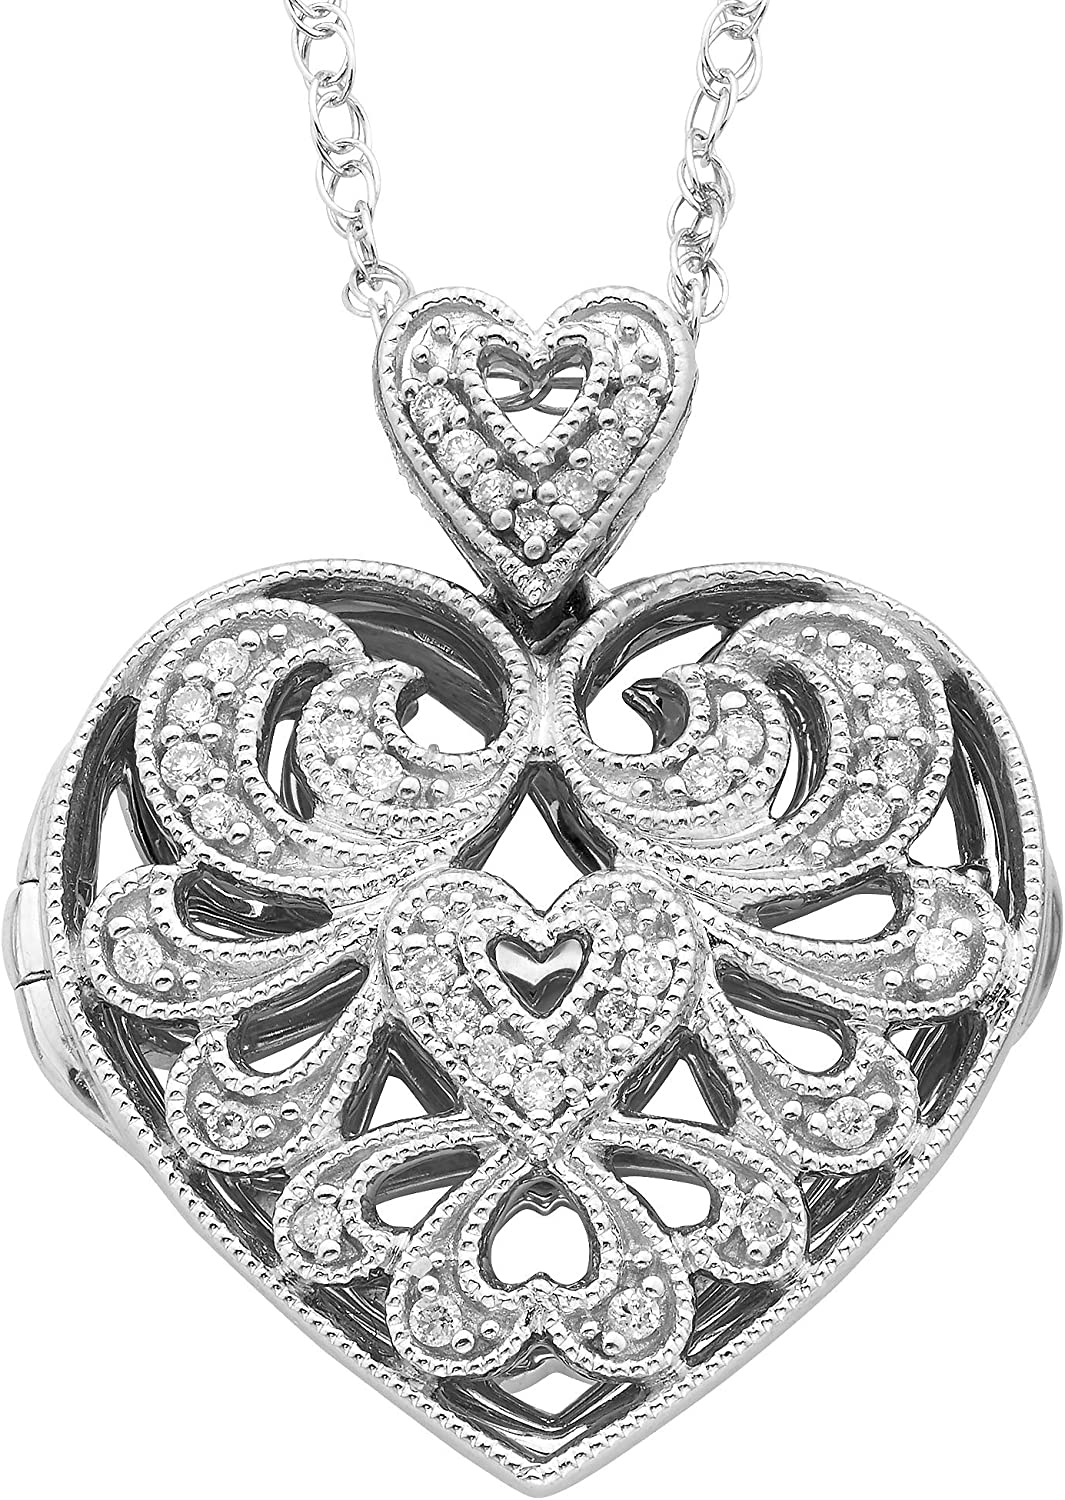 """.925 Sterling Silver 1 10 Cttw 7 Filigree Superior Diamond Hea Sales of SALE items from new works 8"""" Studded"""